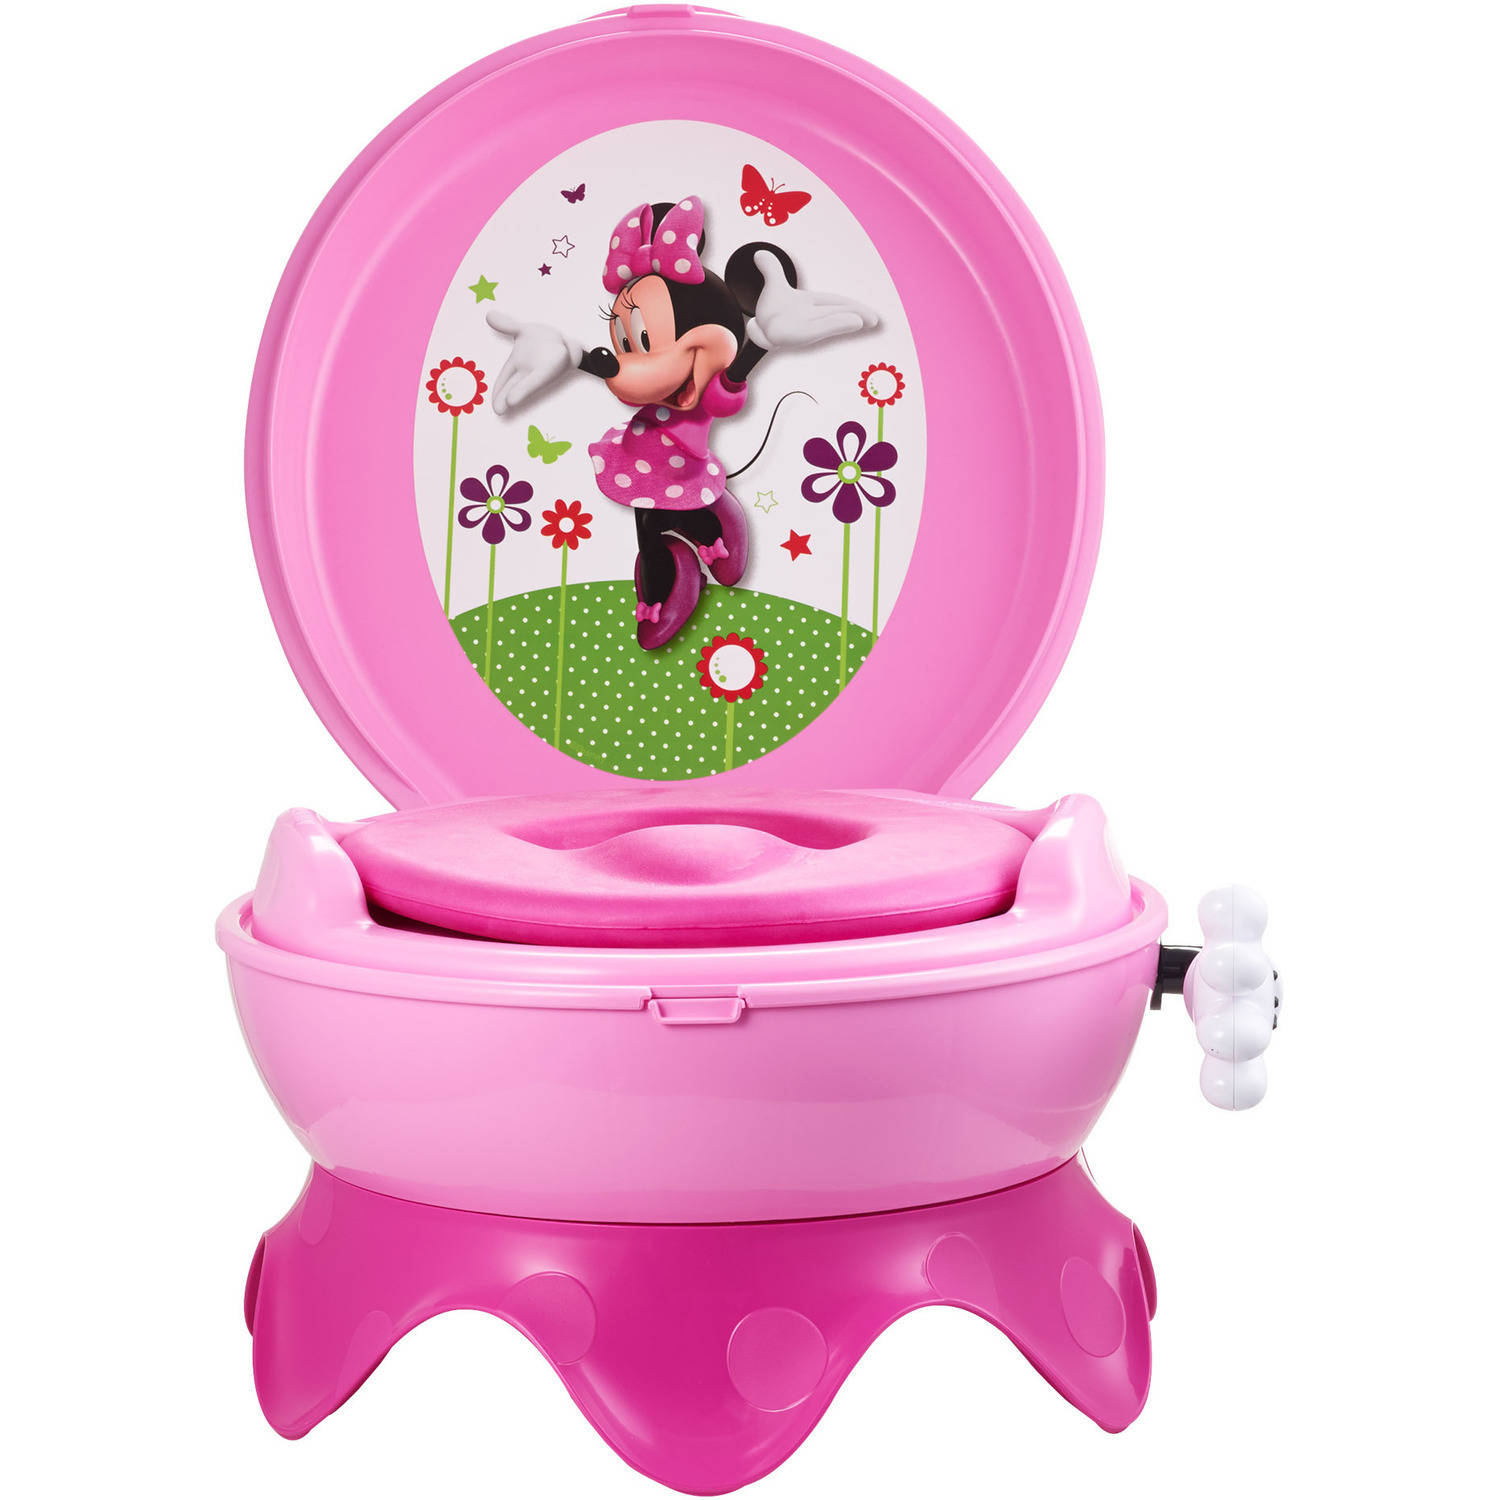 1500x1500 Disney Baby Minnie Mouse 3 In 1 Potty System Pink Squizzas!